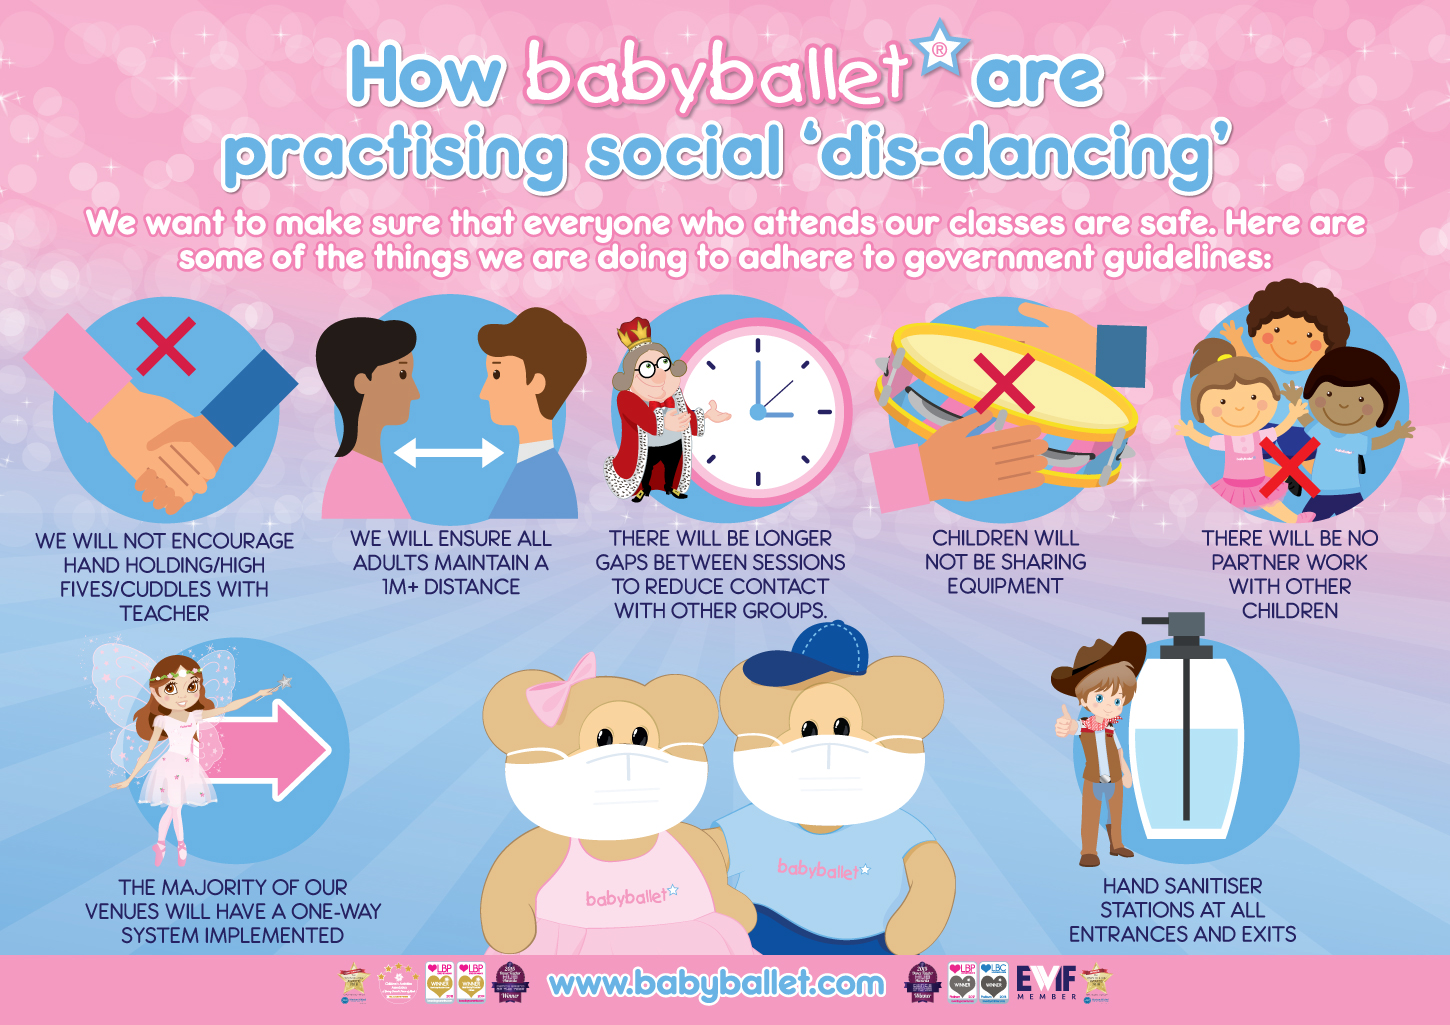 How babyballet are practising social distancing and implementing additional safety measures in all of our classes